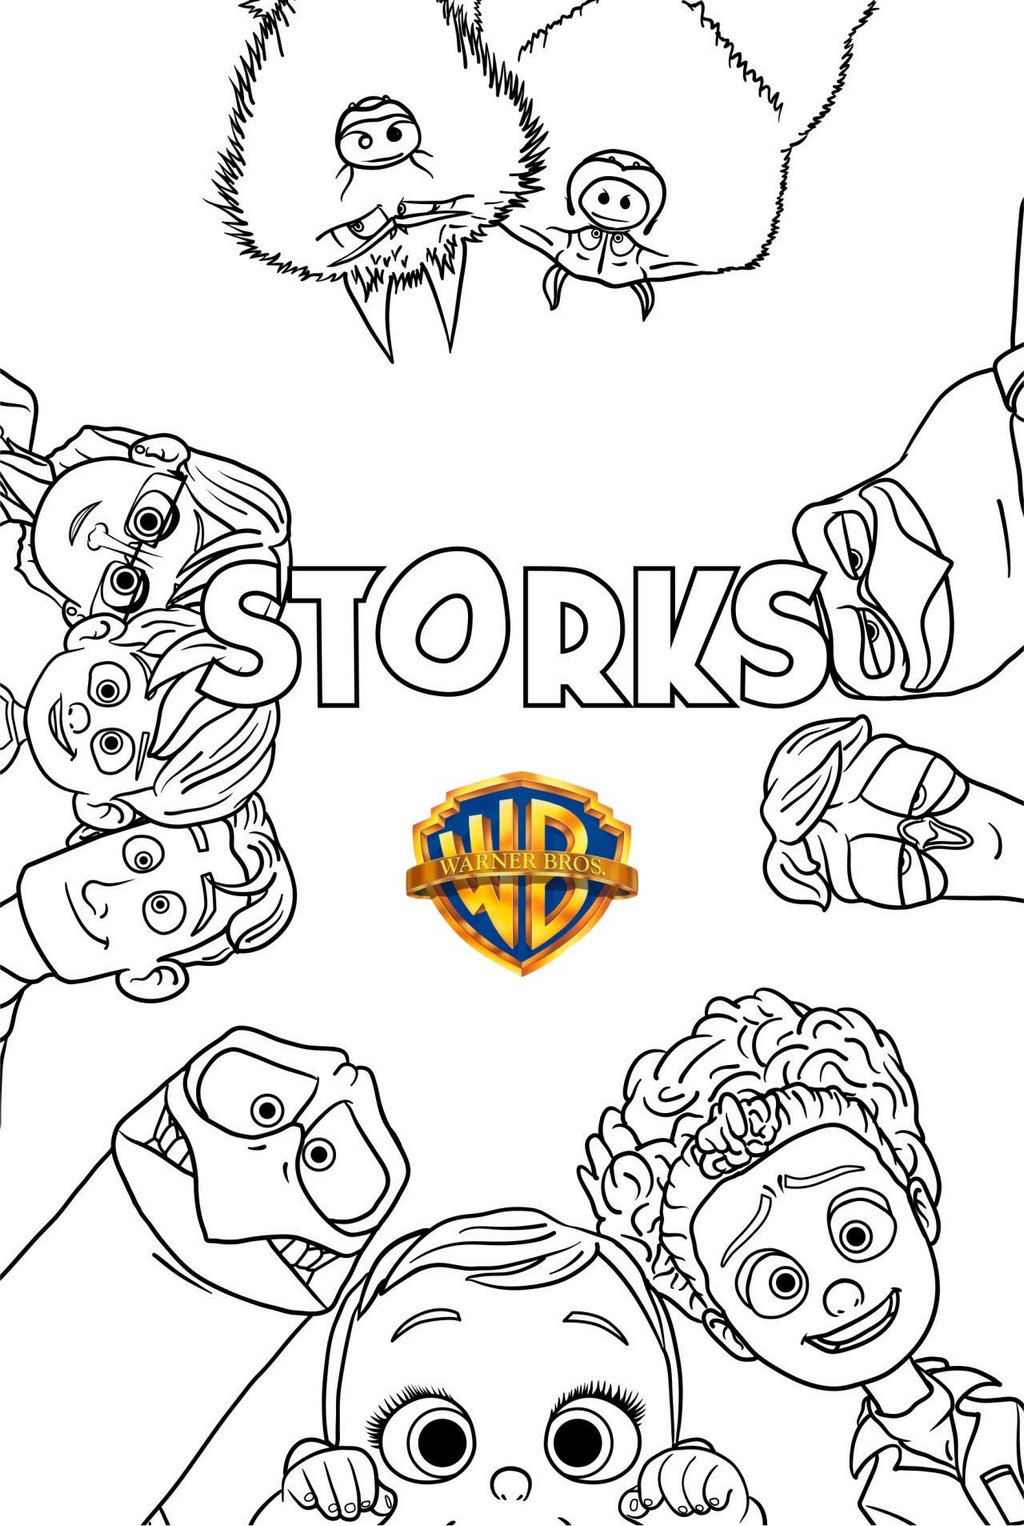 Storks Warner Bros Coloring Page